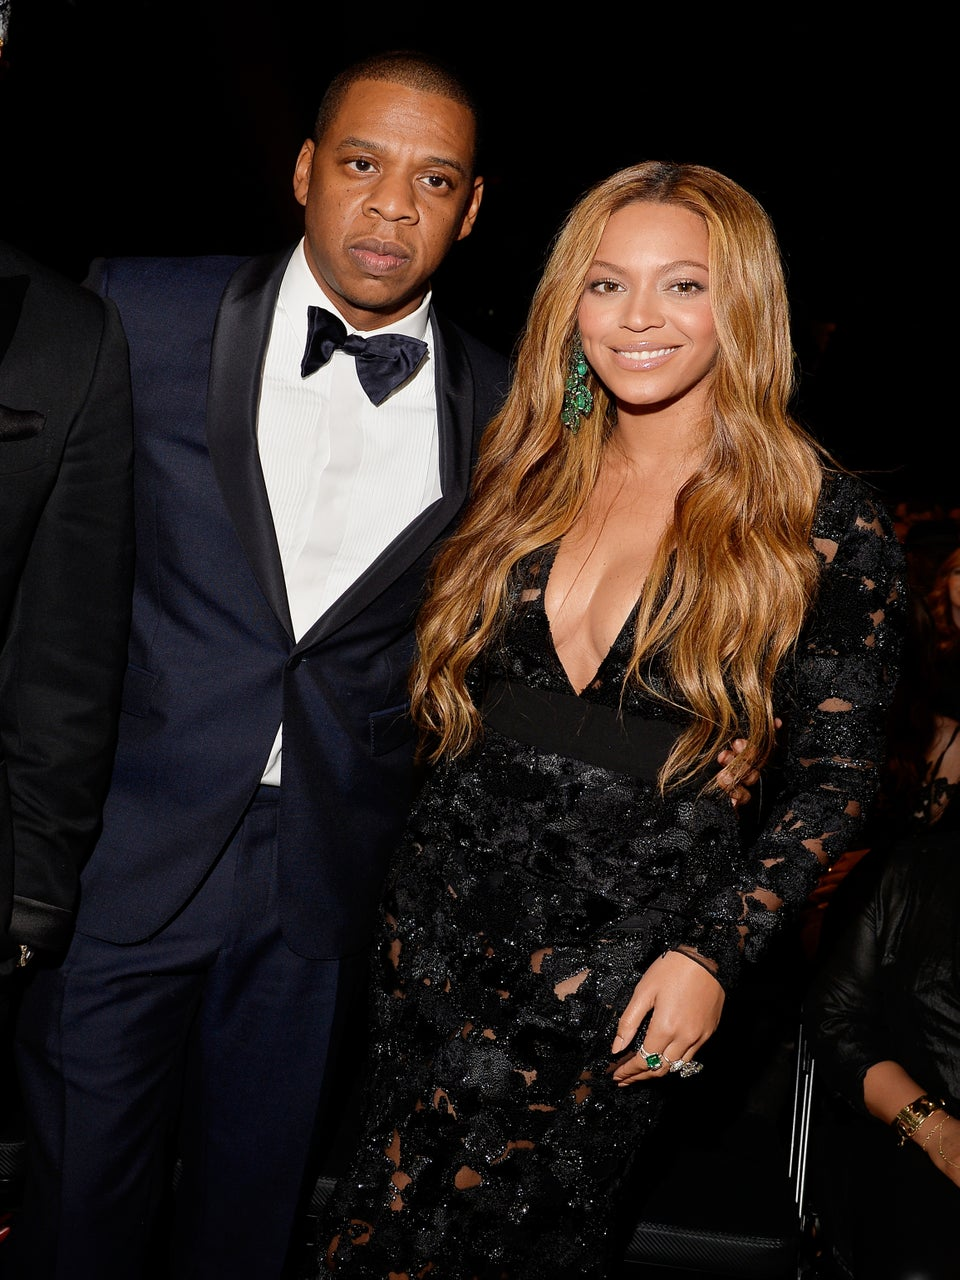 Richard Lawson Has The Tea On Stepdaughter Beyoncé And JAY-Z's Upcoming Tour